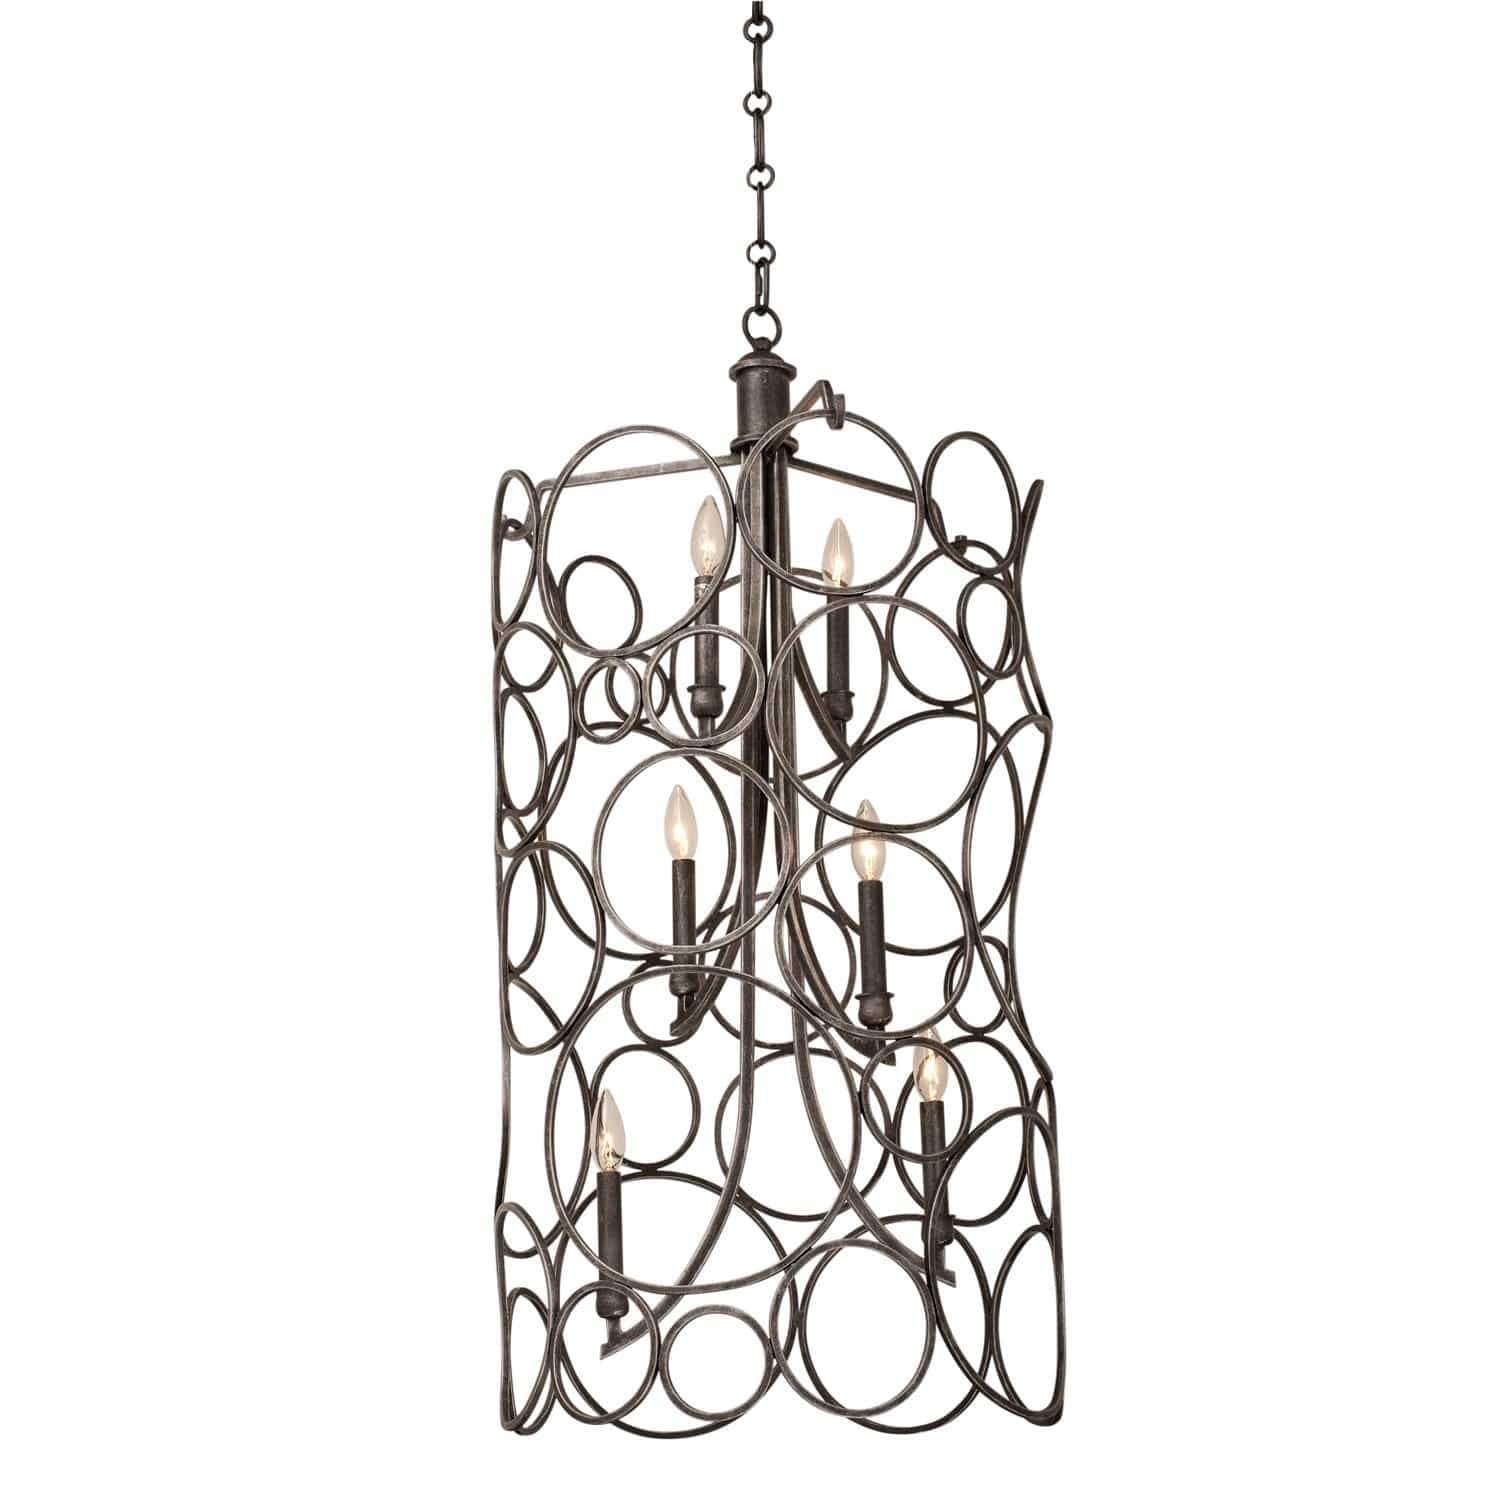 Kalco Lighting Pendants Heirloom Bronze Ashbourne Large Foyer By Kalco Lighting 2760